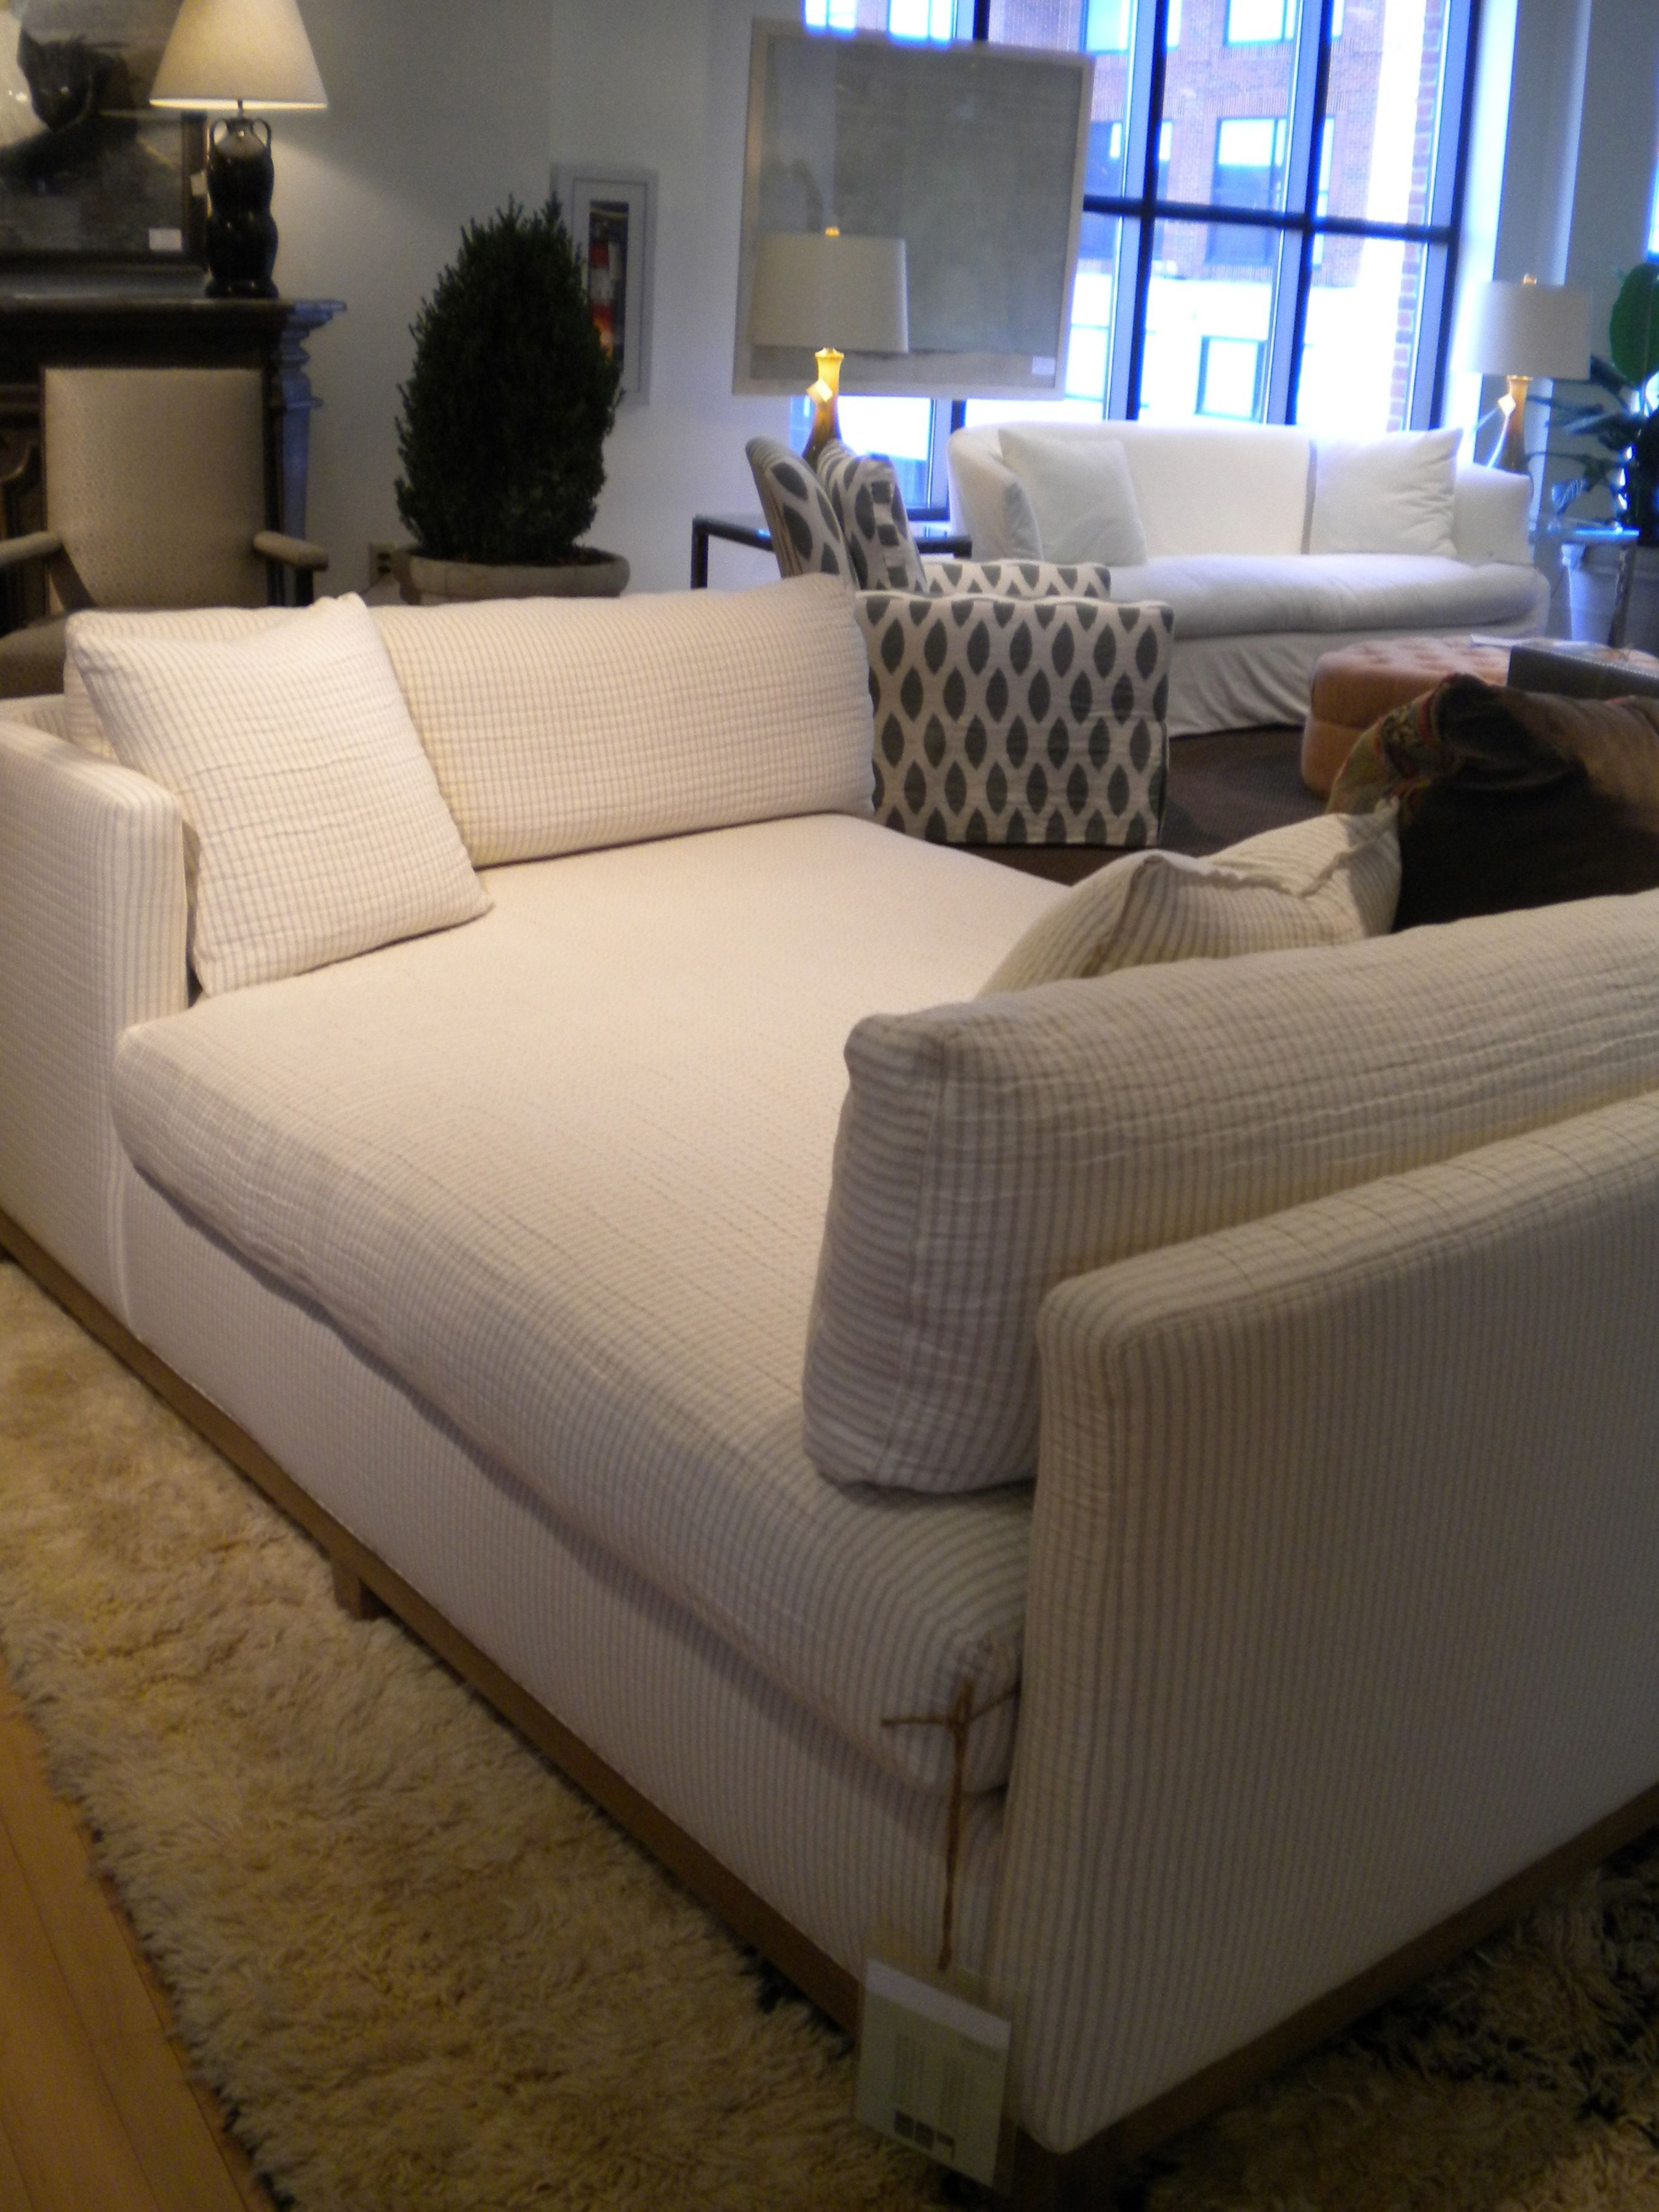 Chaise Lounge Chairs For Living Room Ideas On Foter Rh Com Furniture Modern